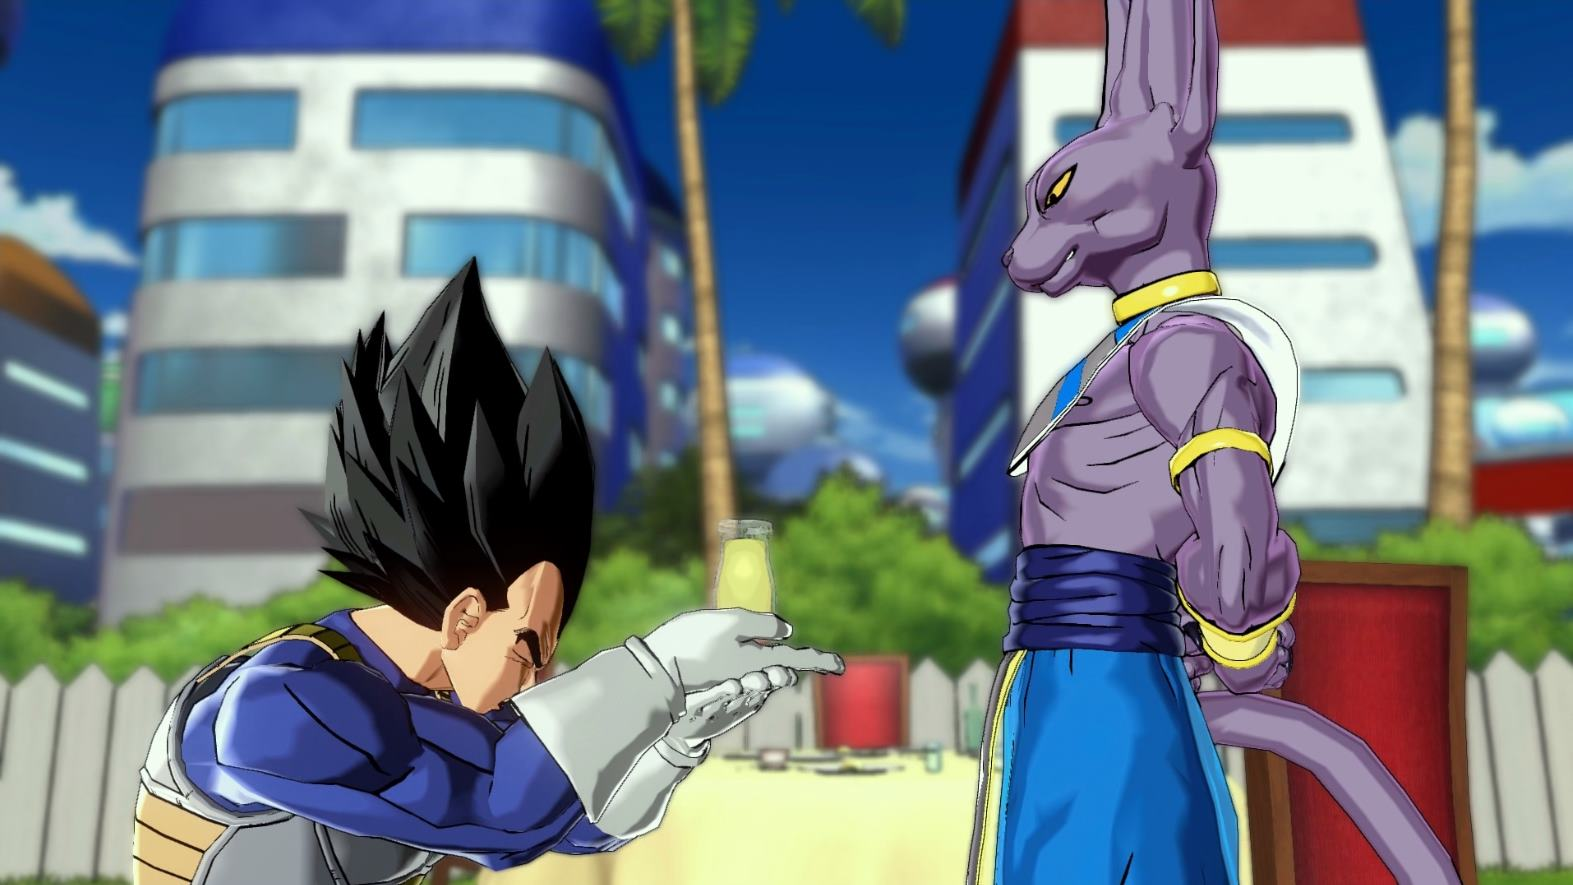 Dragon Ball's most prolific voice actor on why Xenoverse will confuse you